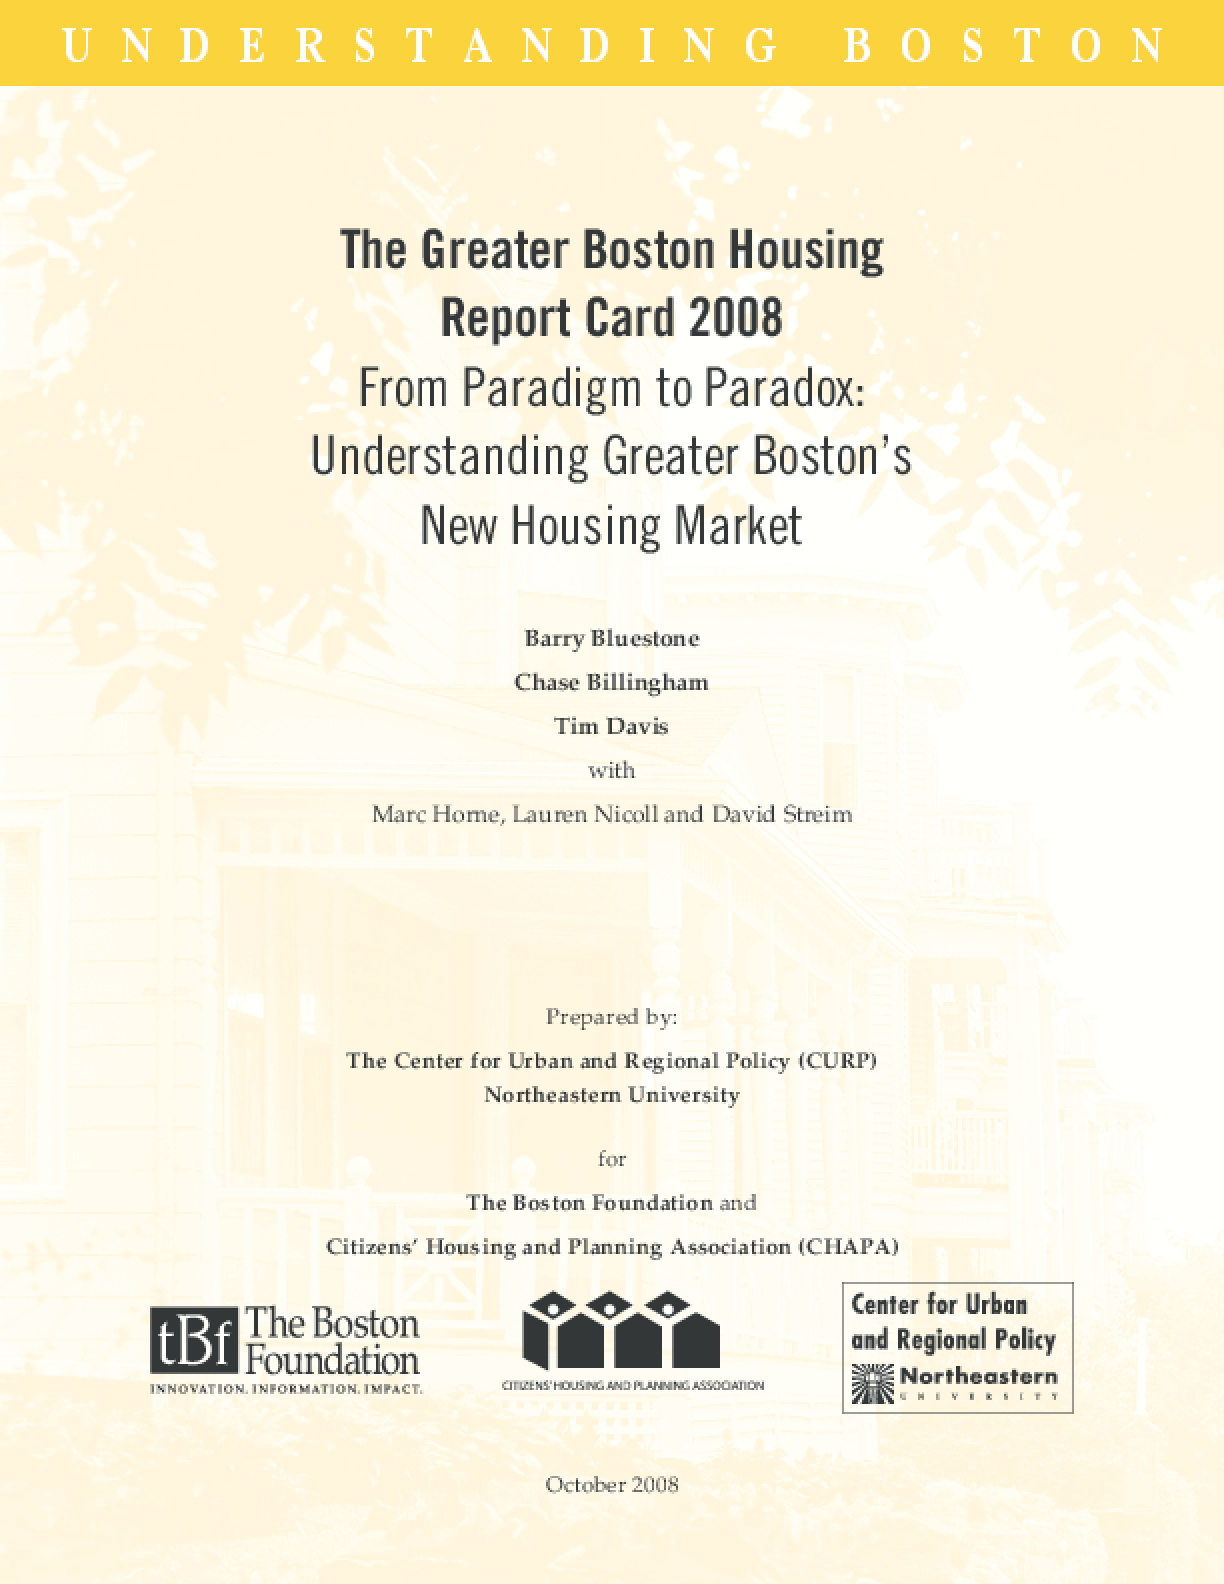 The Greater Boston Housing Report Card 2008: From Paradigm to Paradox: Understanding Greater Boston's New Housing Market